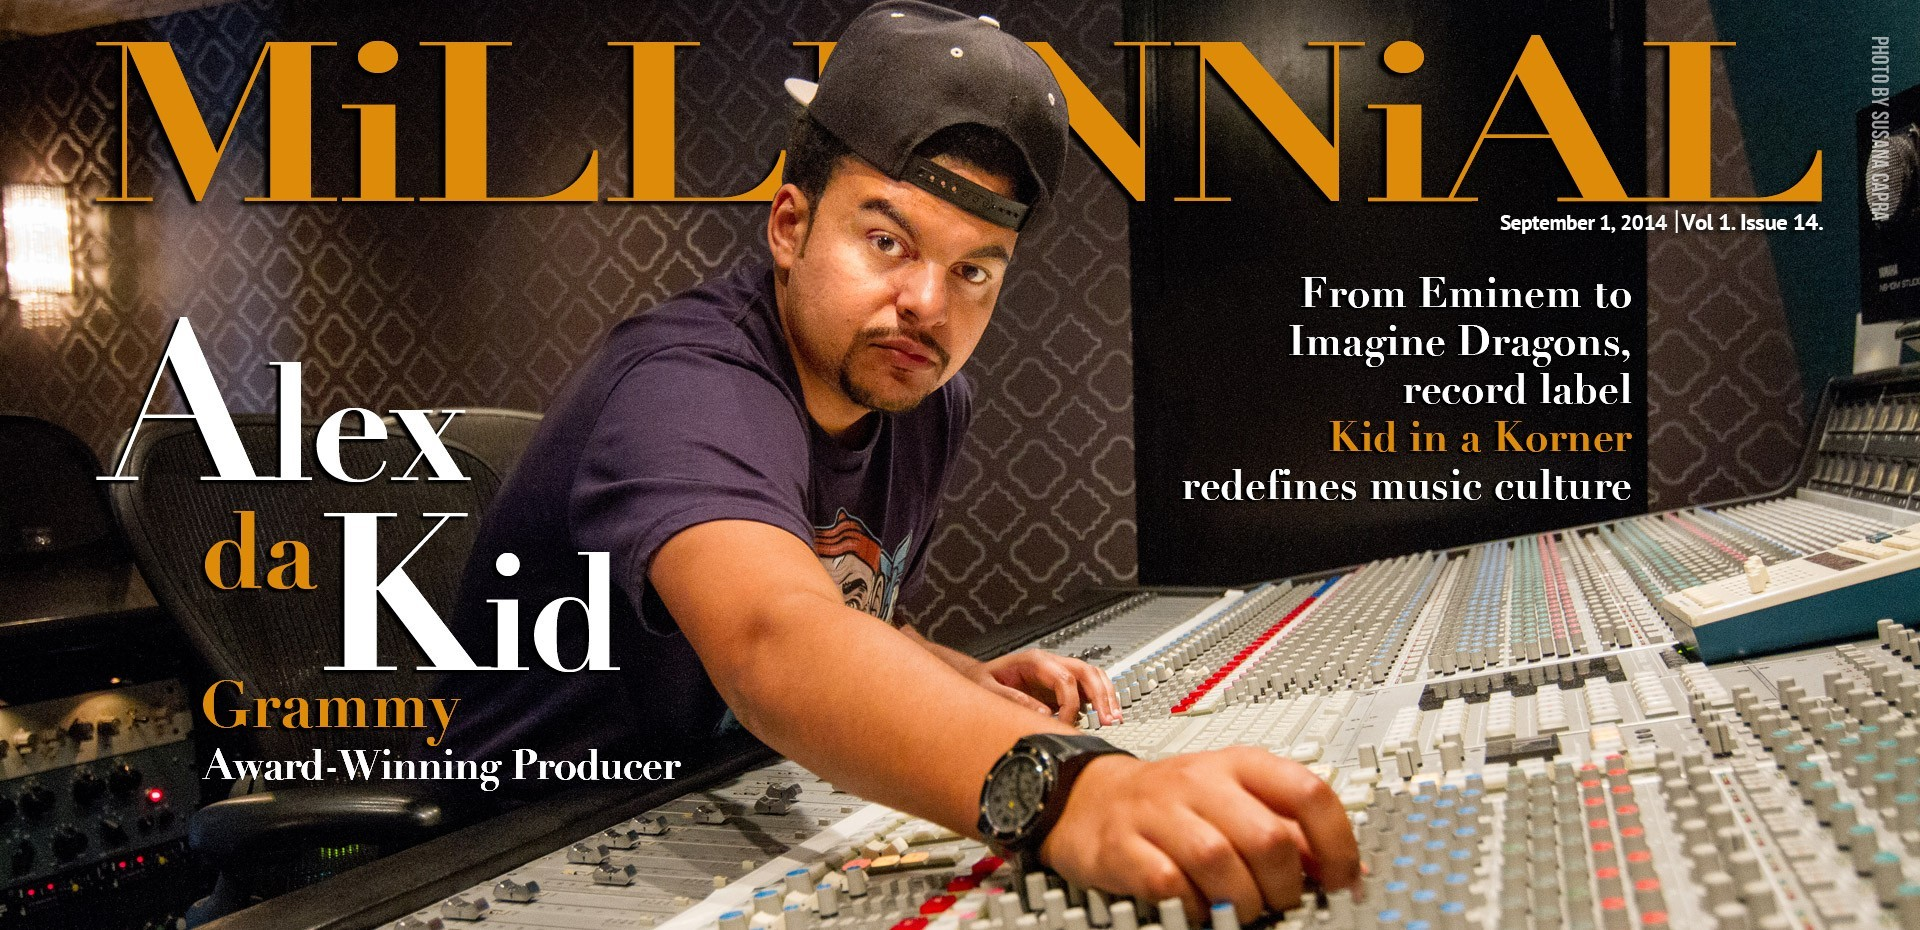 music-producer-alex-da-kid-shapes-culture-for-millennials